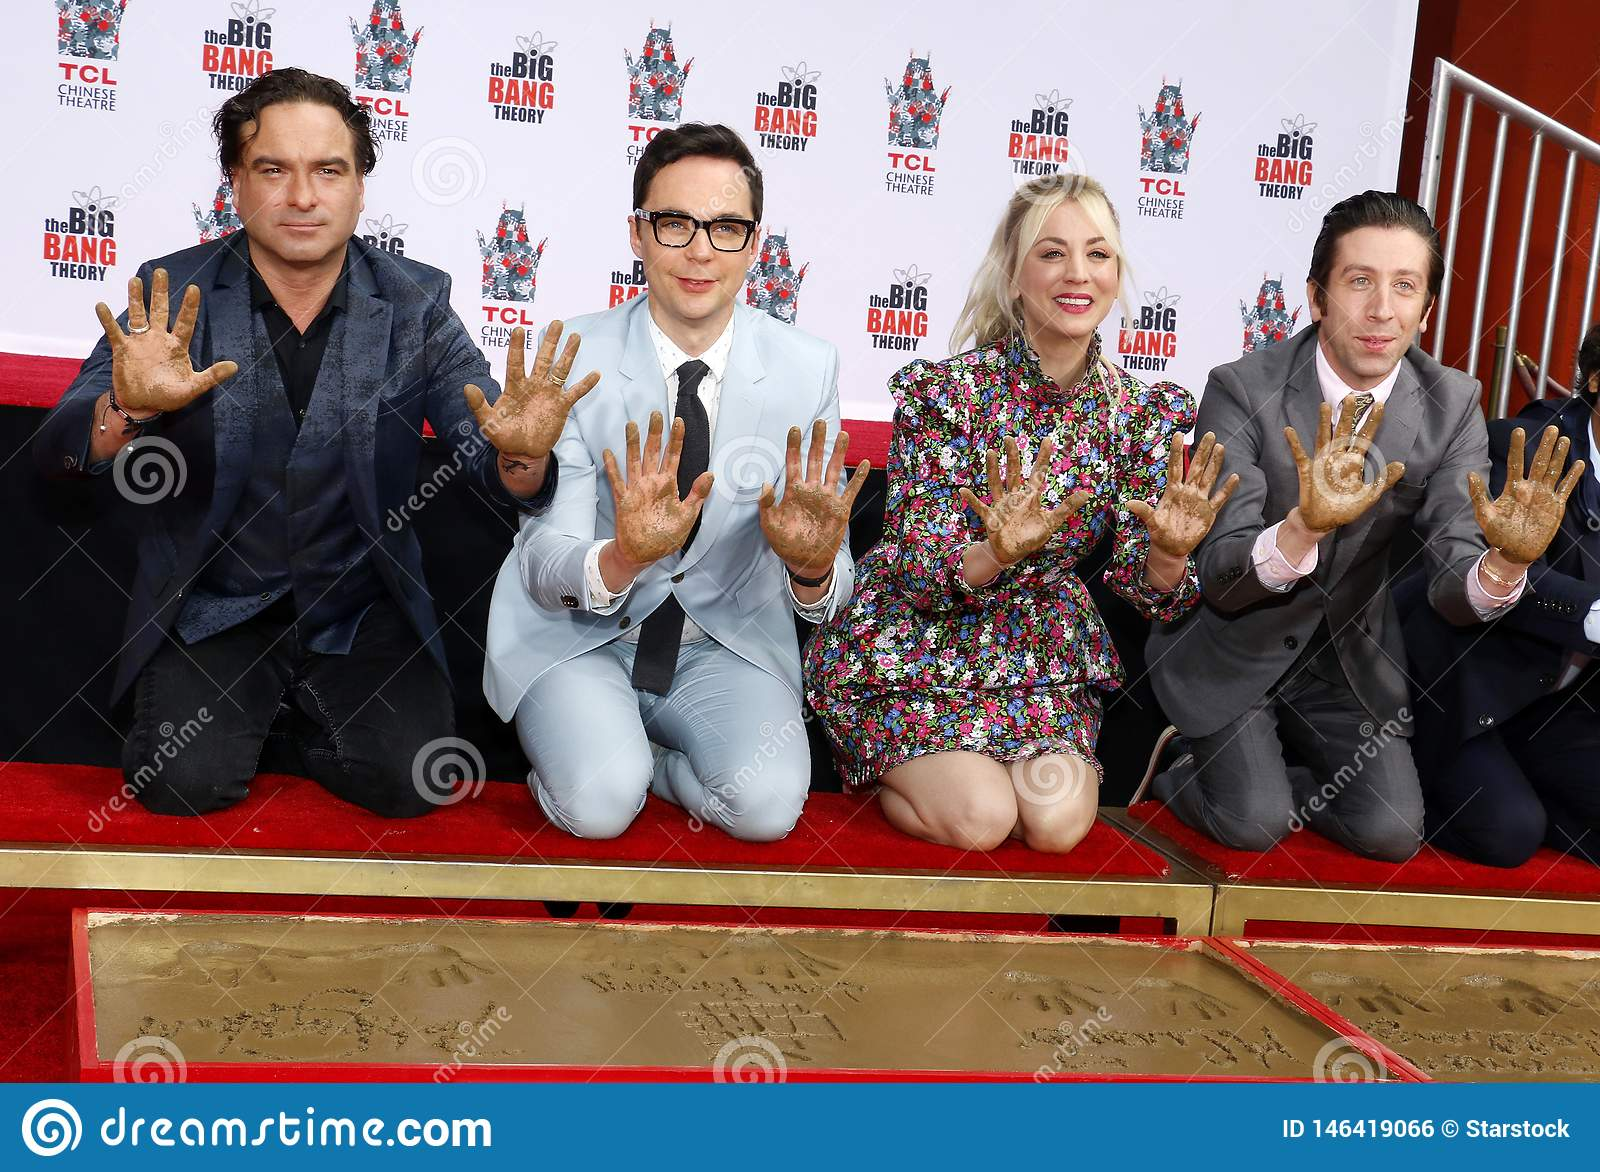 Johnny Galecki, Jim Parsons, Kaley Cuoco, Simon Helberg